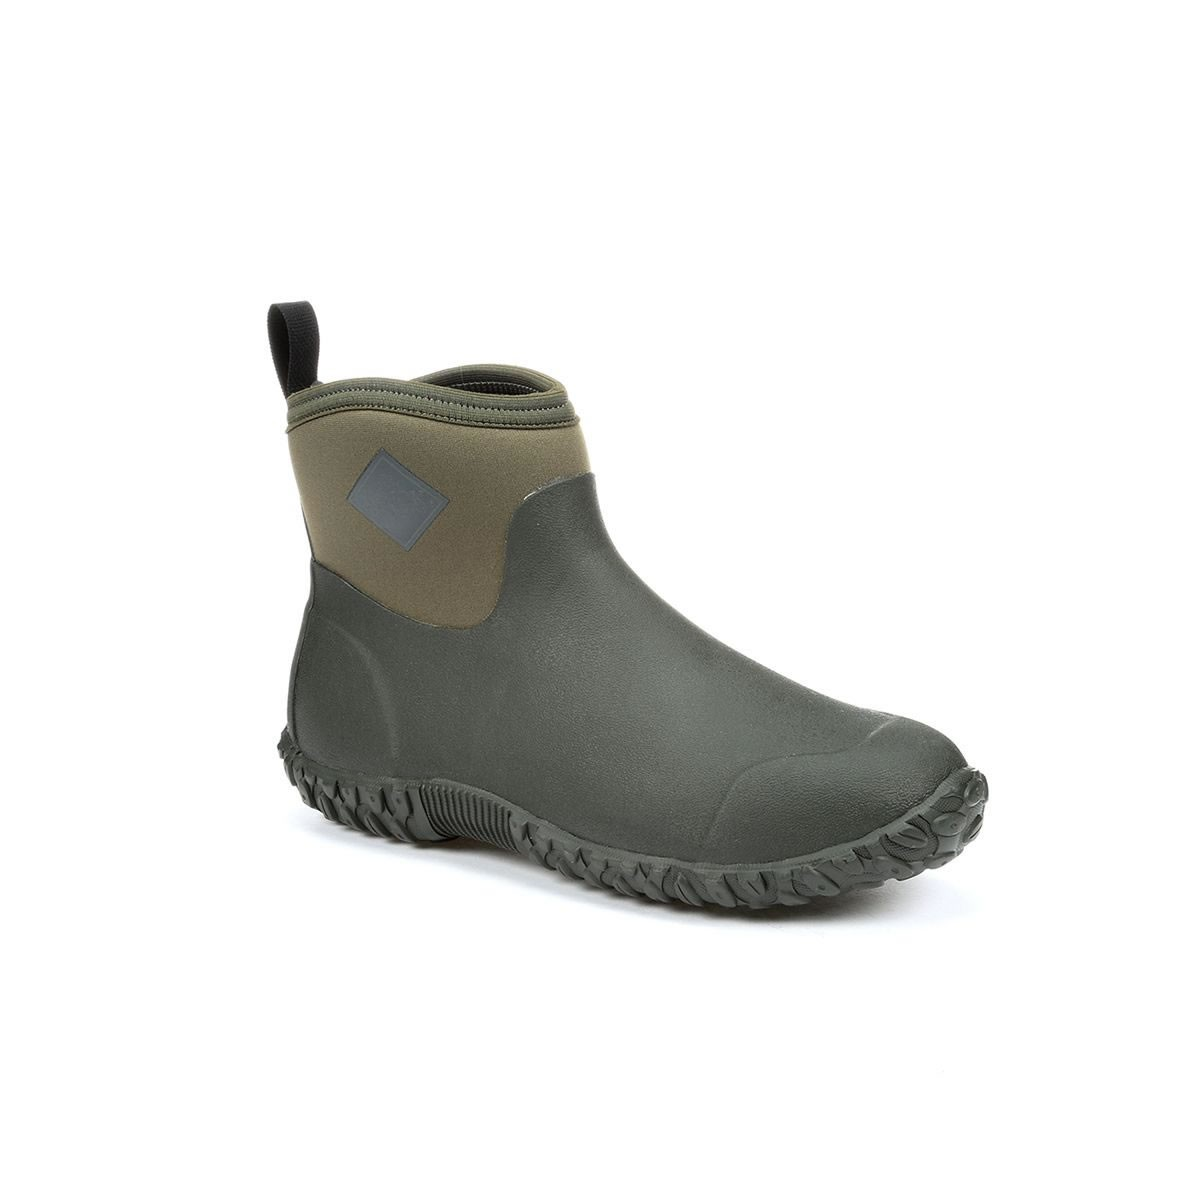 Muck Boot Mens Muckster Ankle Moss Size 12 UK